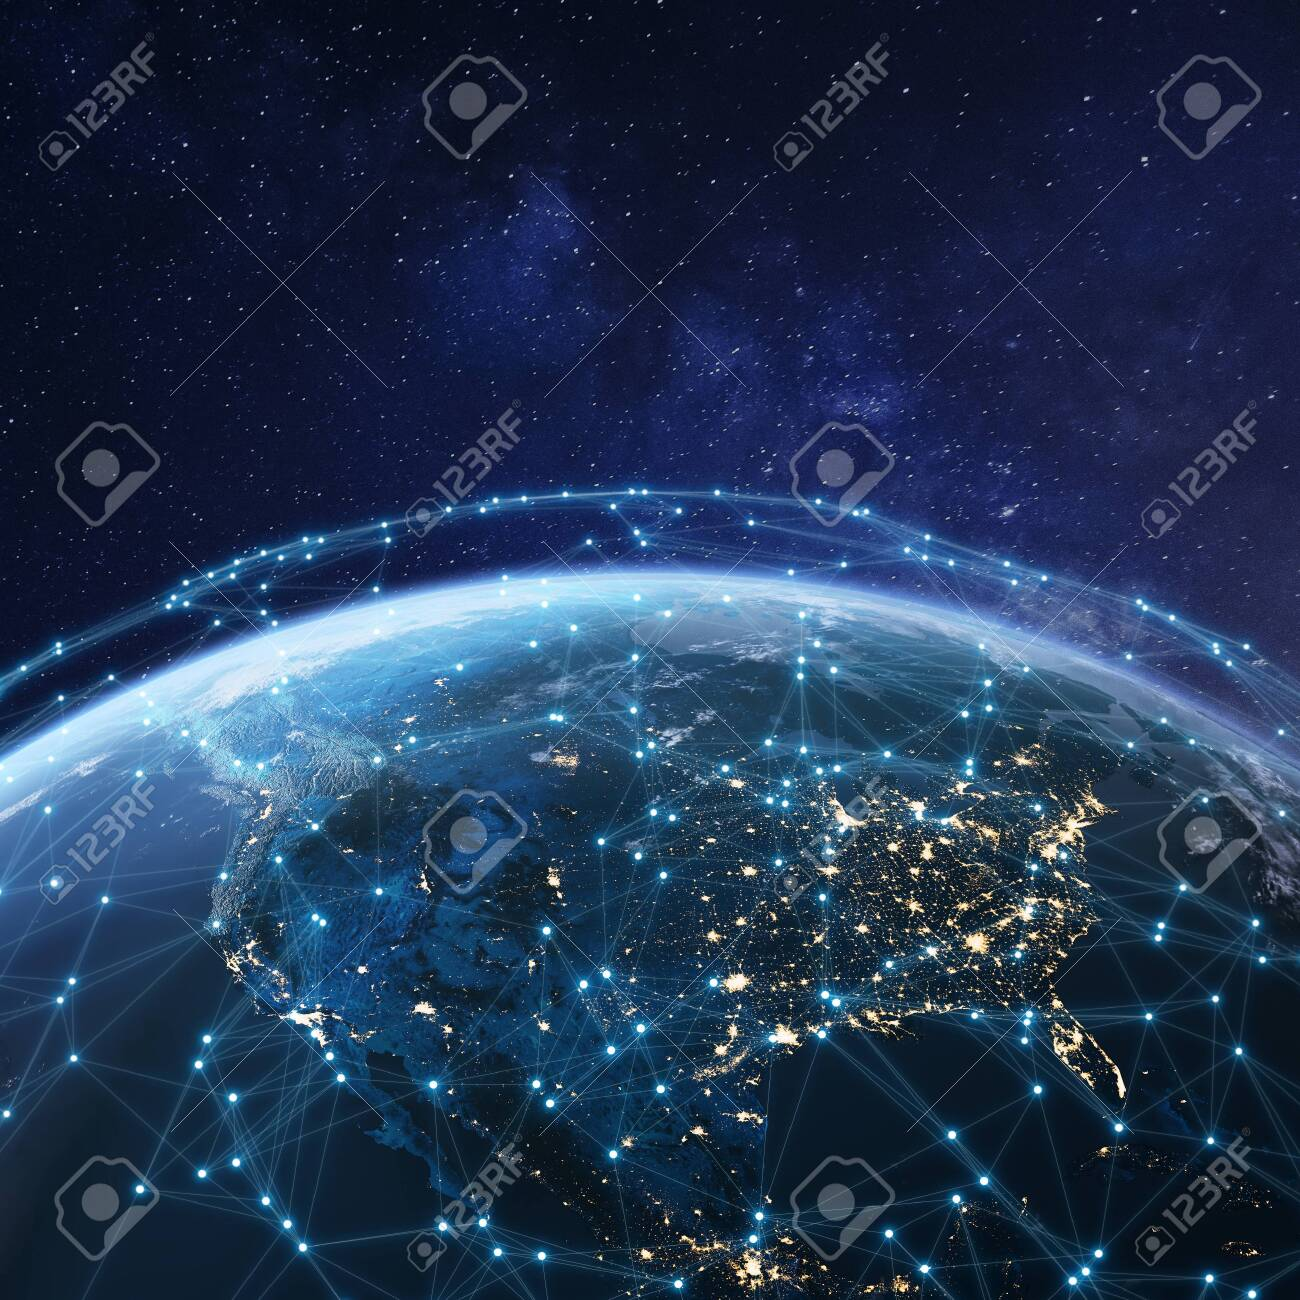 Telecommunication network above North America from space by night with city lights in USA, Canada and Mexico, satellite orbiting Planet Earth for Internet of Things IoT and blockchain technology - 143012030